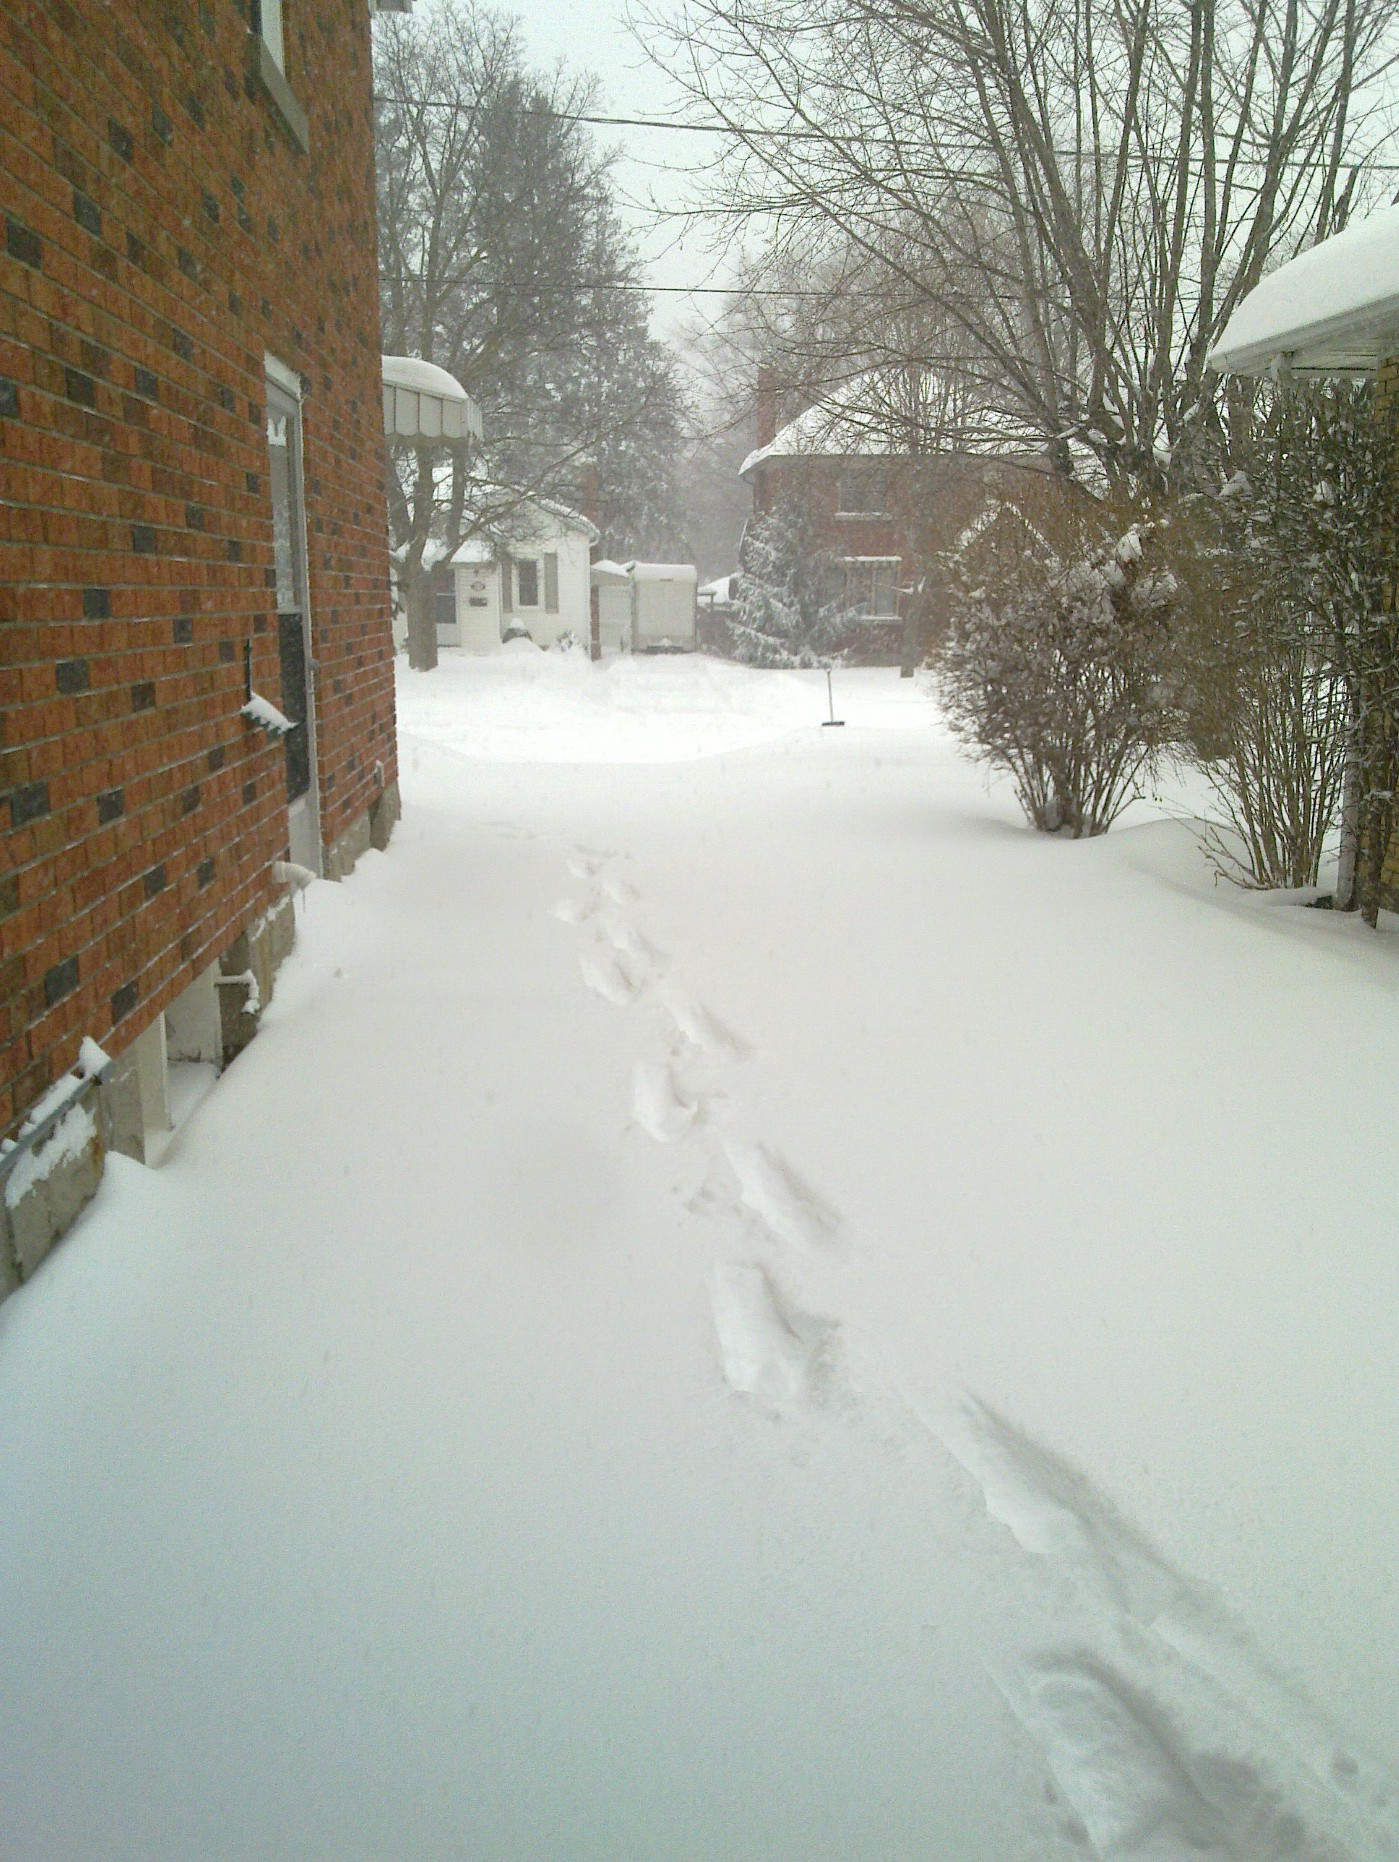 Snowy driveway between houses with footprints leading to the road.